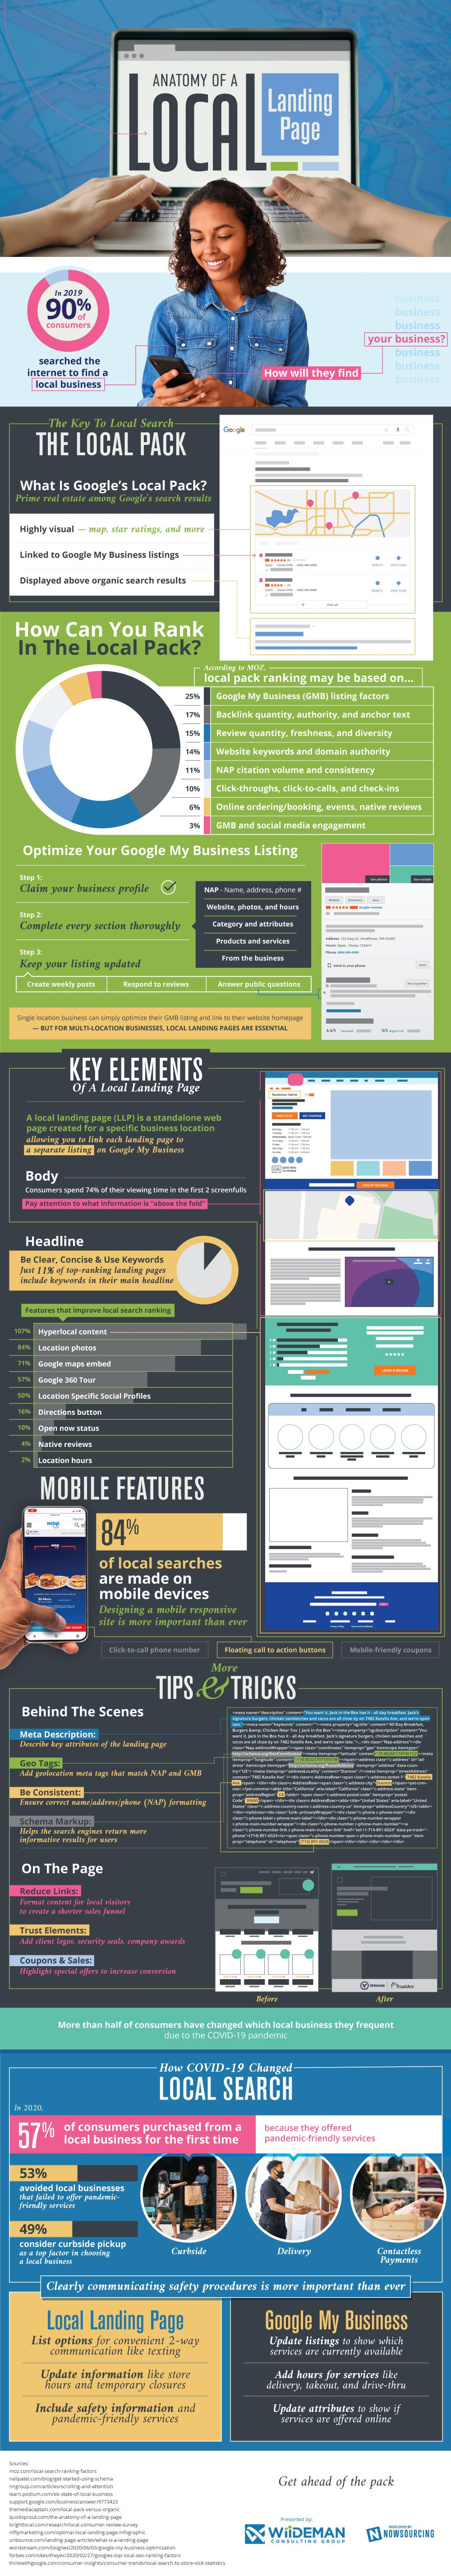 Anatomy of a Local Landing Page - Infographic